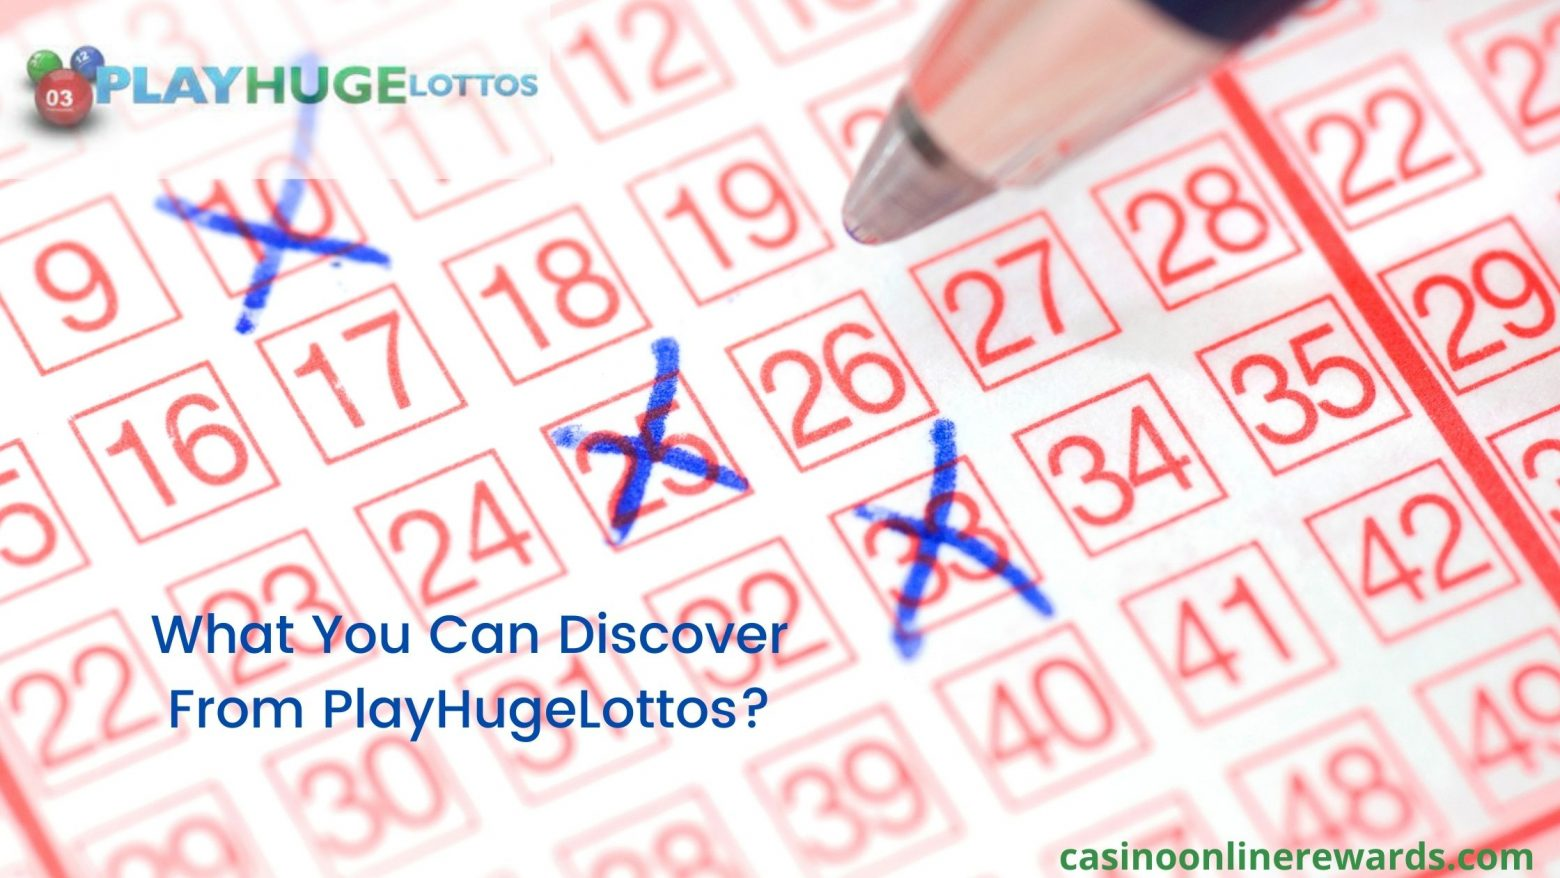 Playhugelottos Review: What You Can Discover